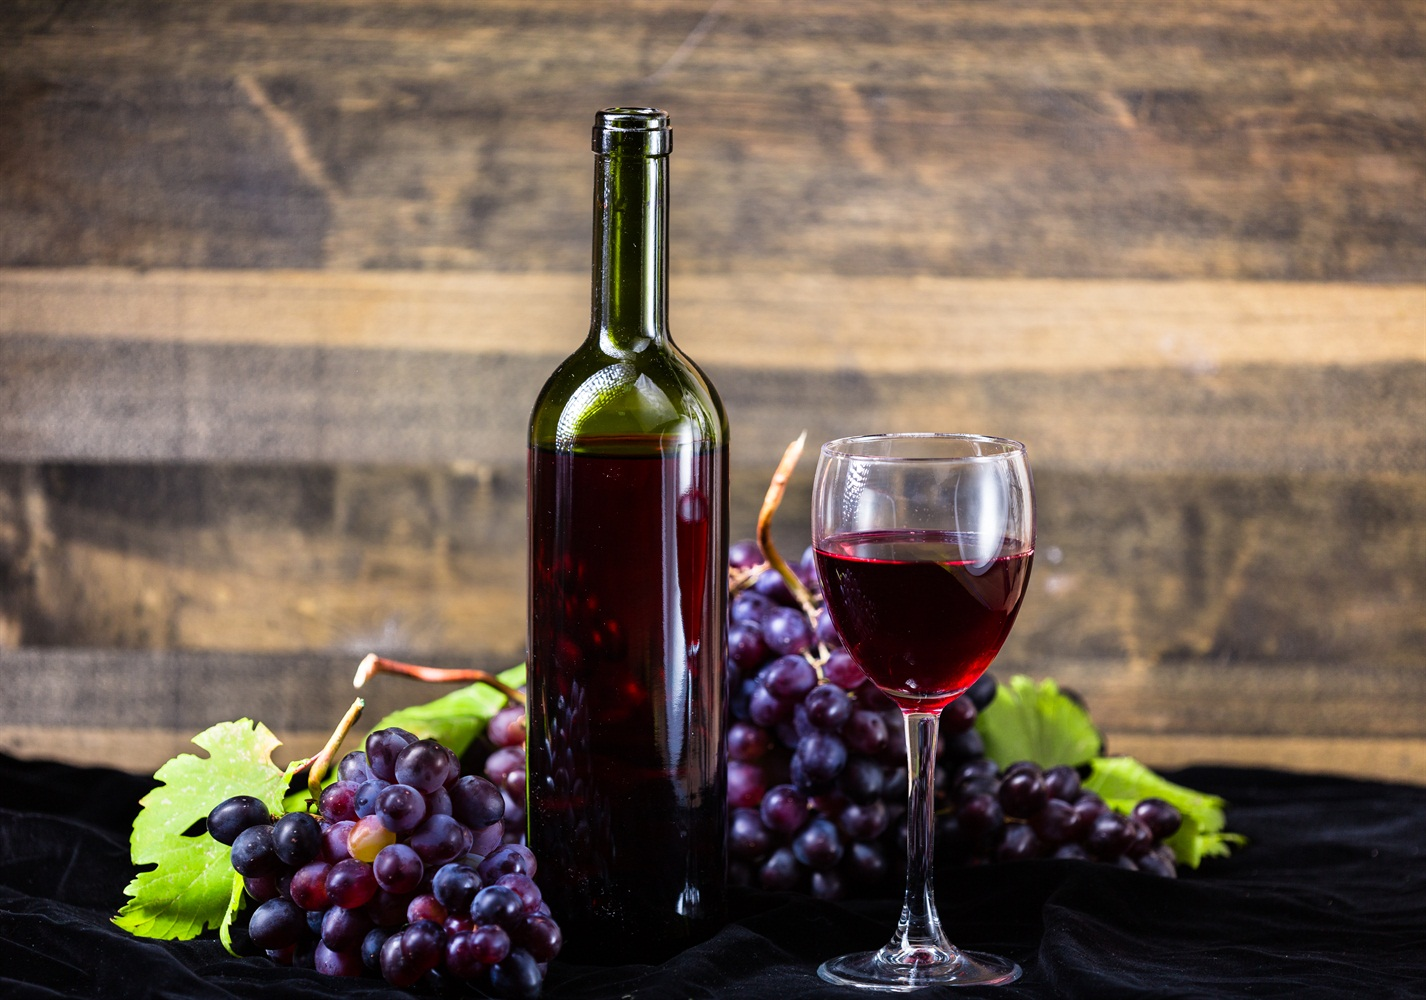 Top 5 Reasons Why Red Wine is Giving You a Headache